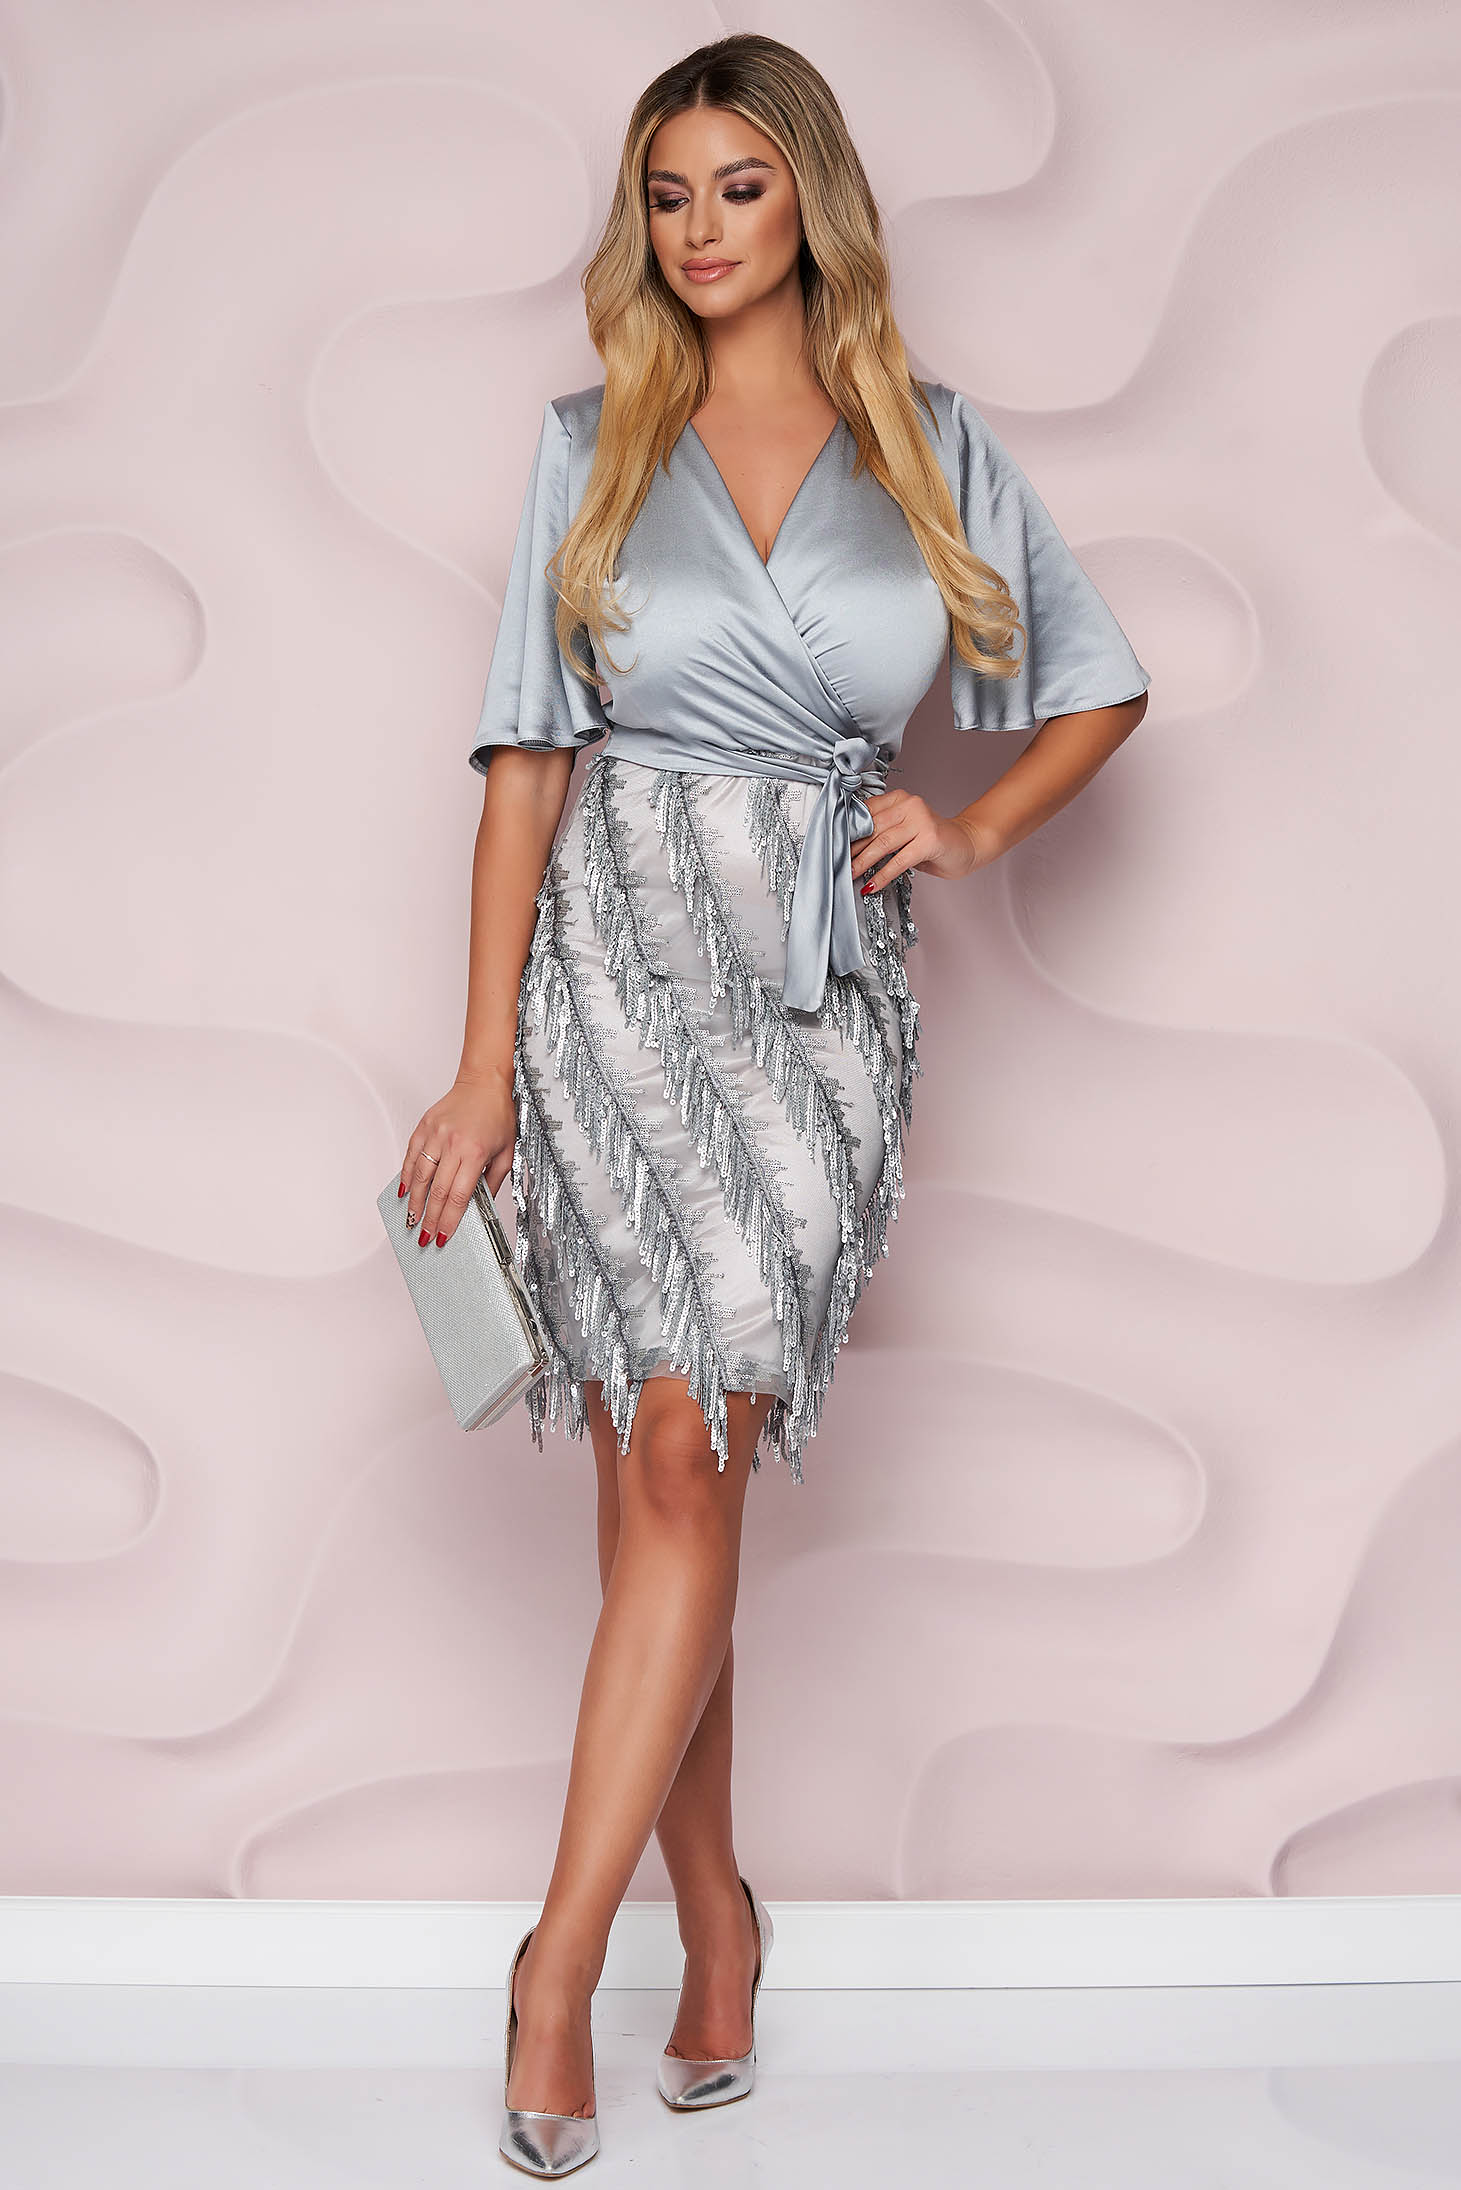 StarShinerS silver dress pencil occasional with sequin embellished details from satin fabric texture nonelastic fabric